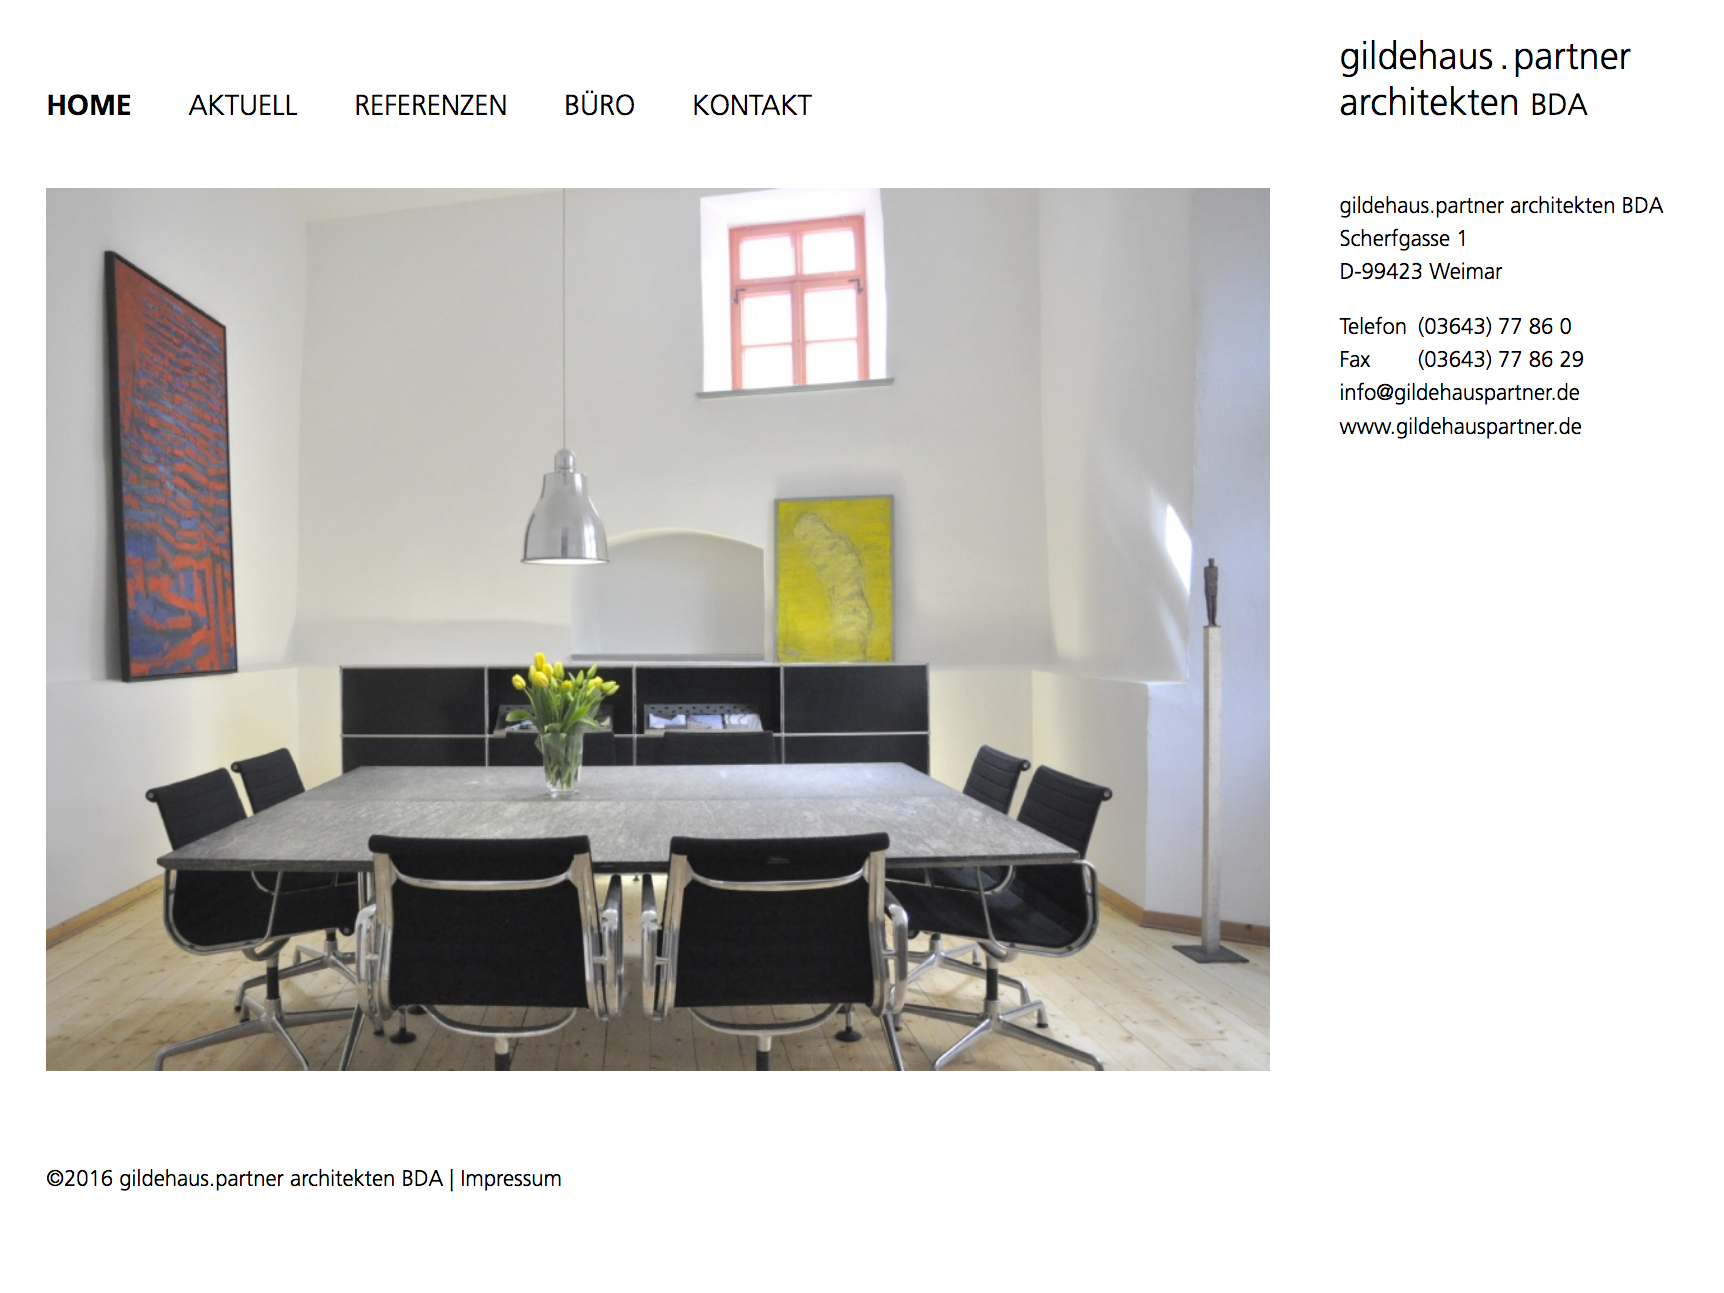 Website gildehauspartner.de